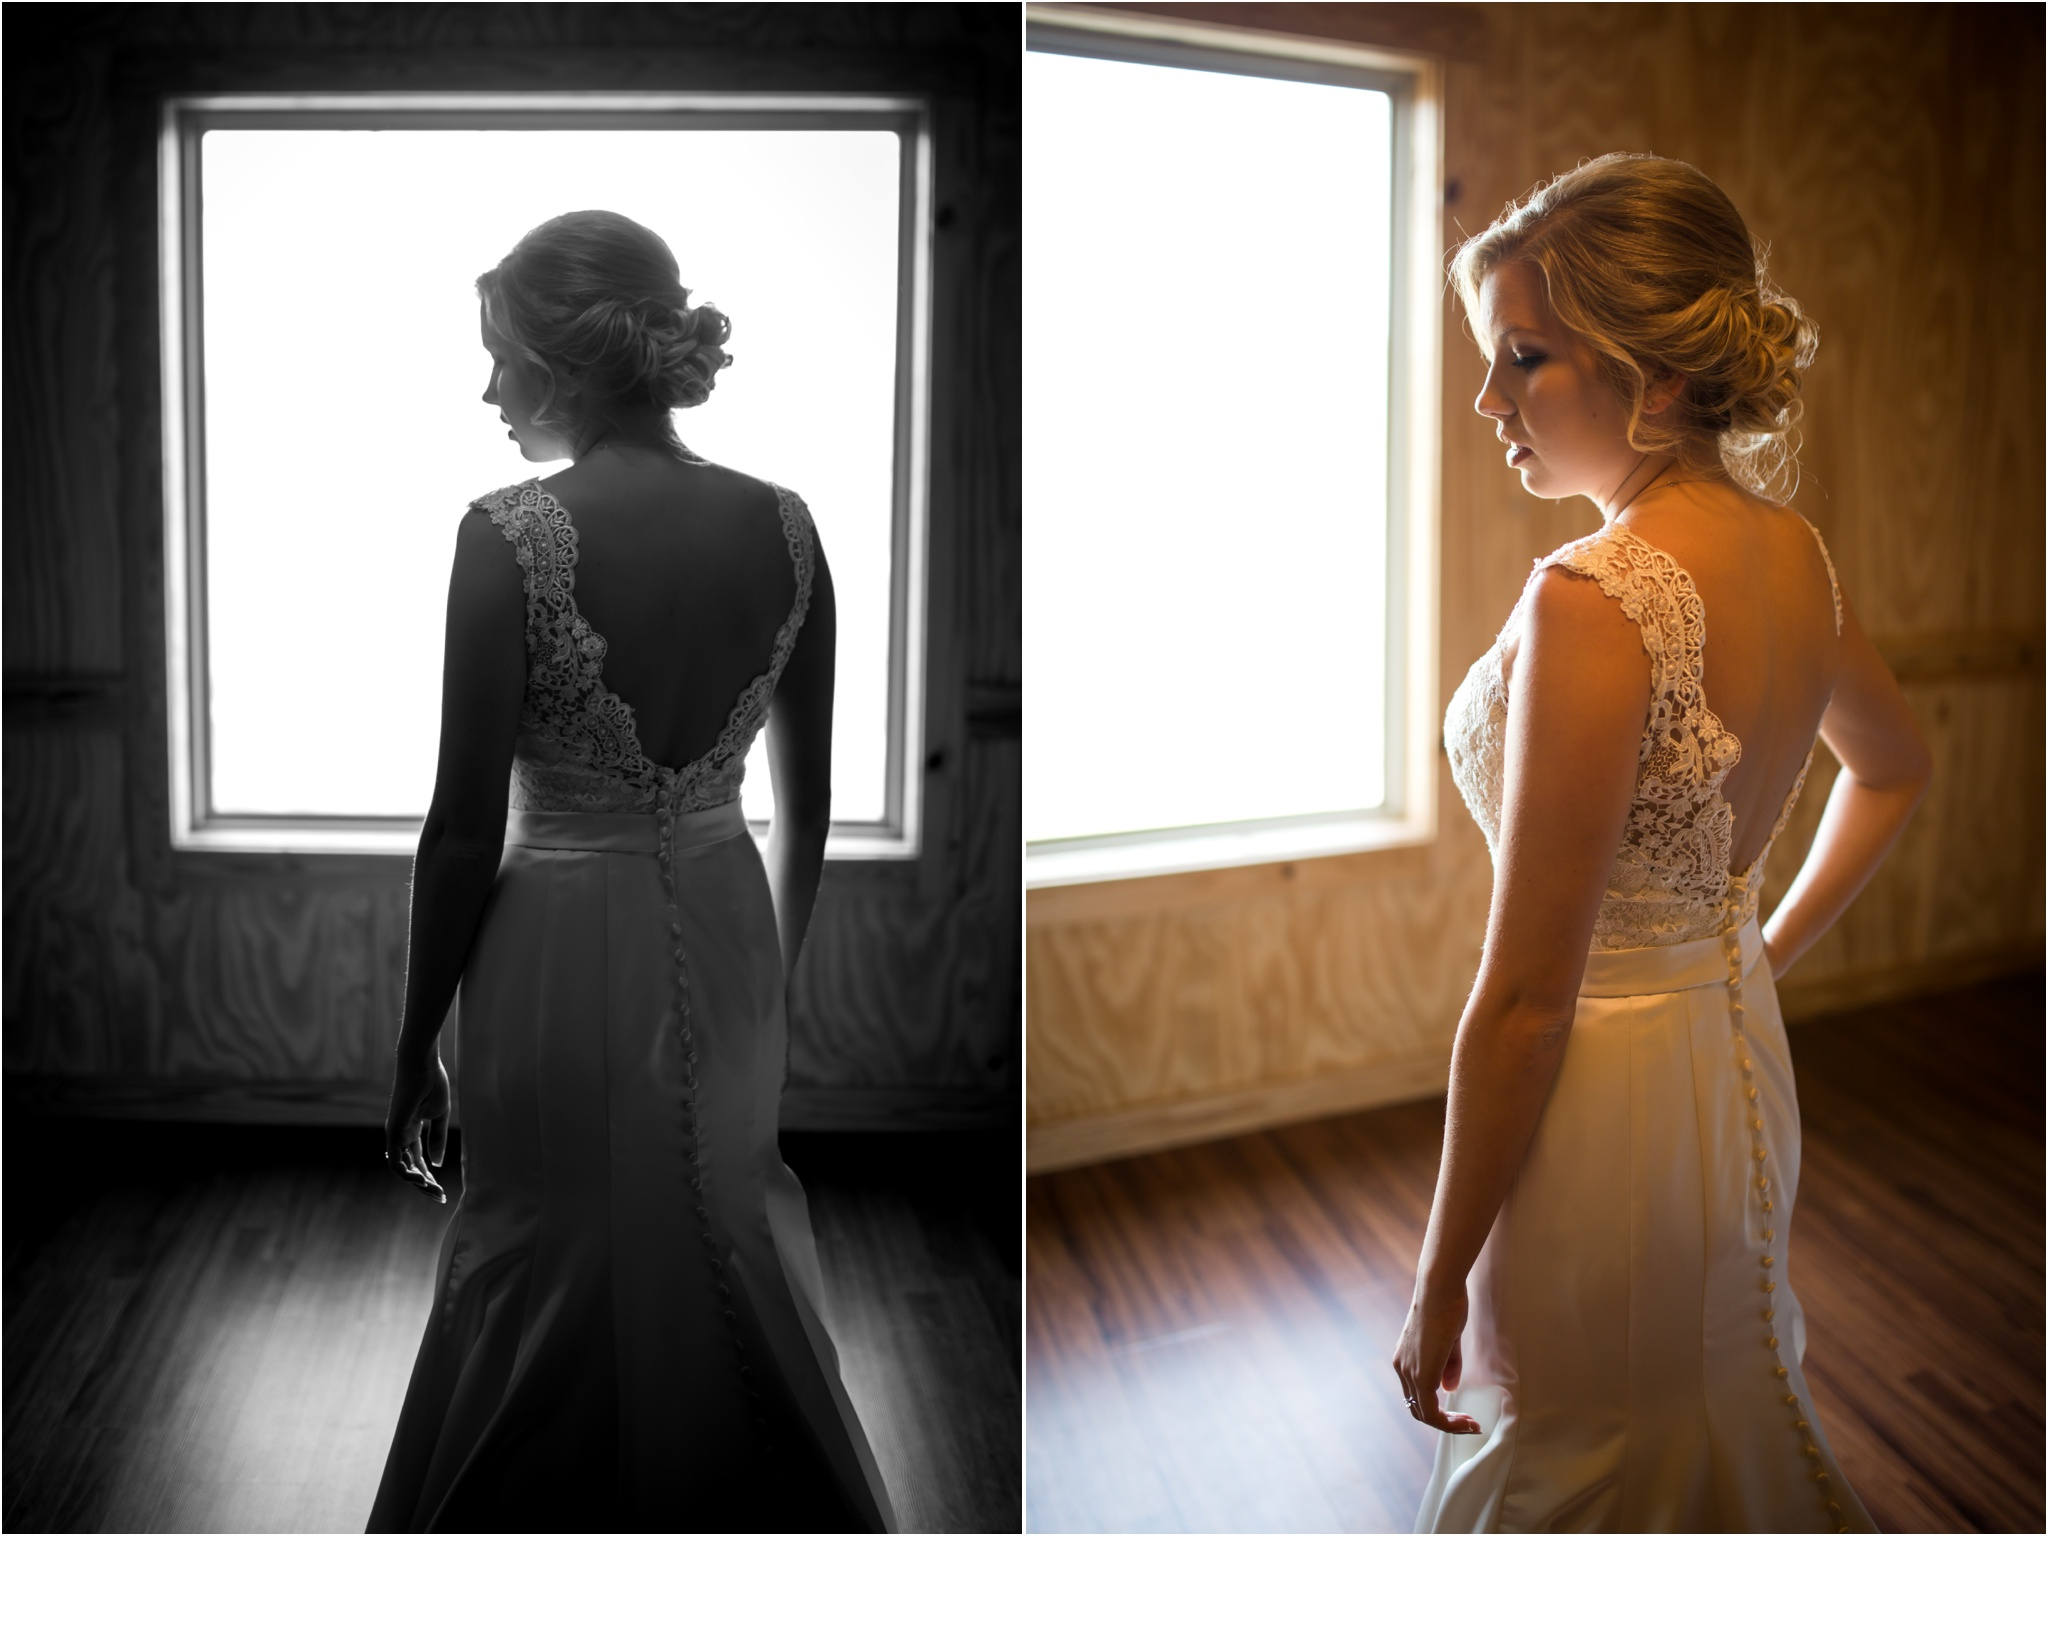 Rainey_Gregg_Photography_St._Simons_Island_Georgia_California_Wedding_Portrait_Photography_0474.jpg